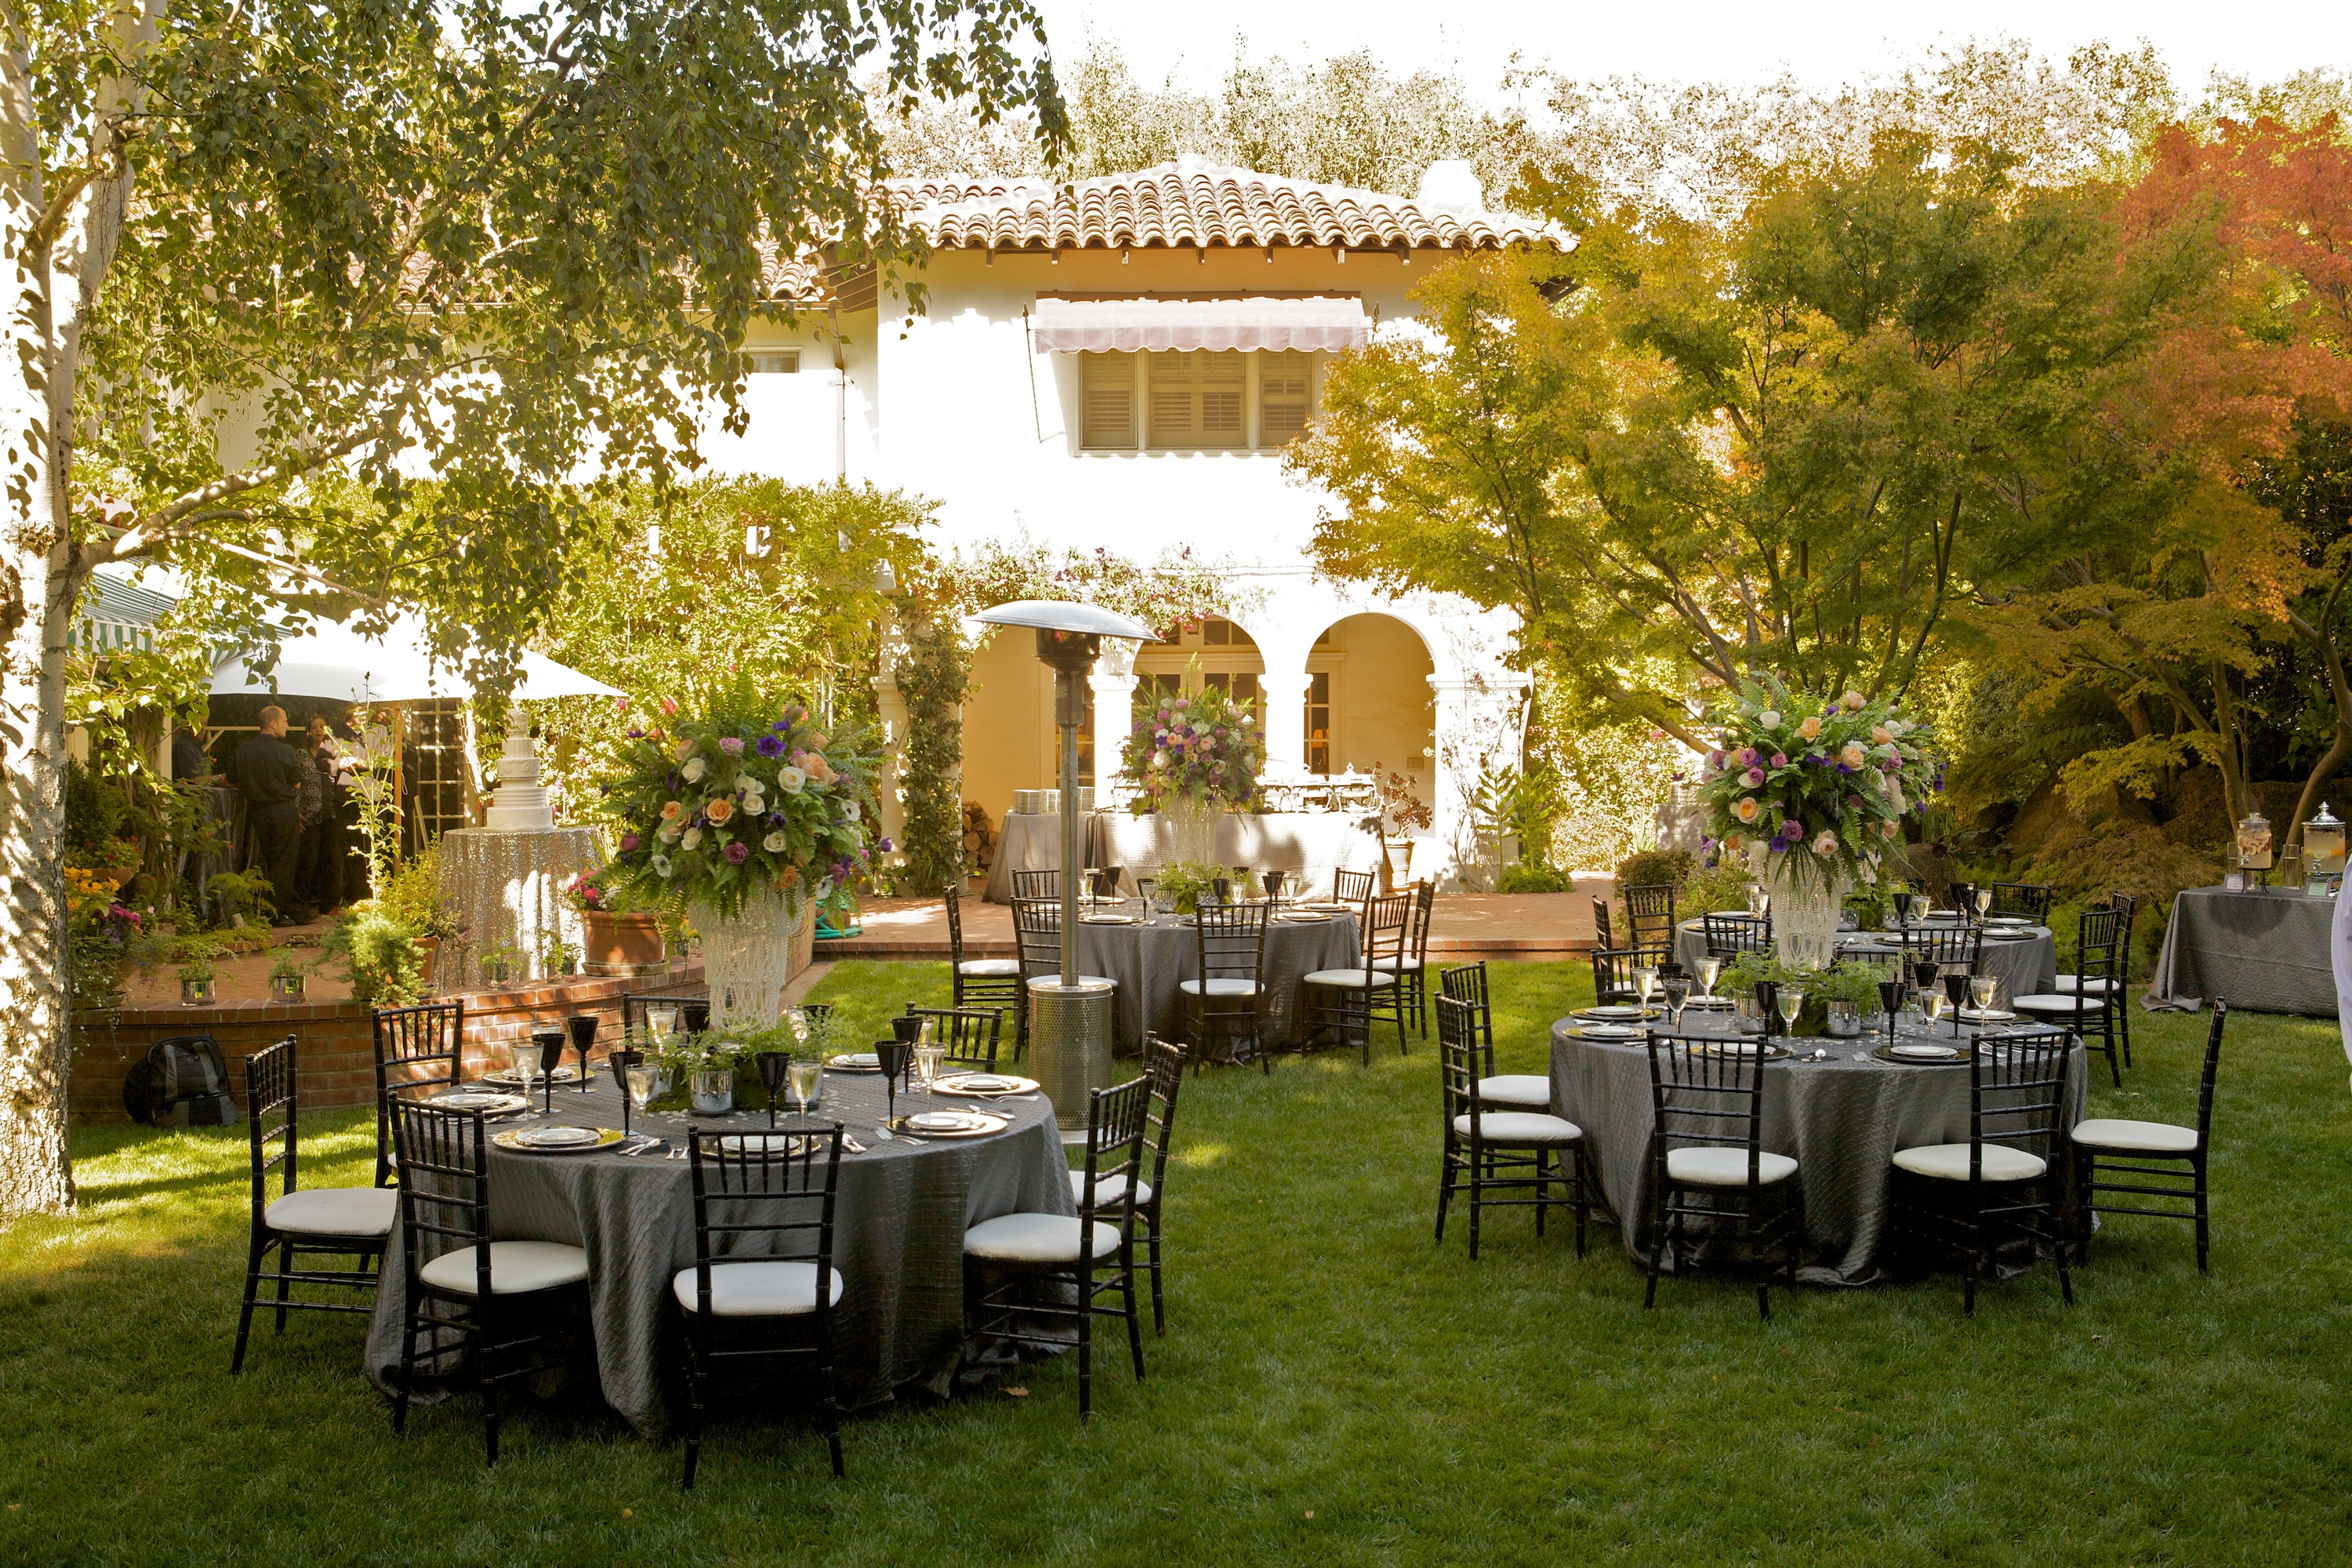 Outdoor Wedding Vendors Wedding Details Reception Decor Inspiration By Jerri Woolworth